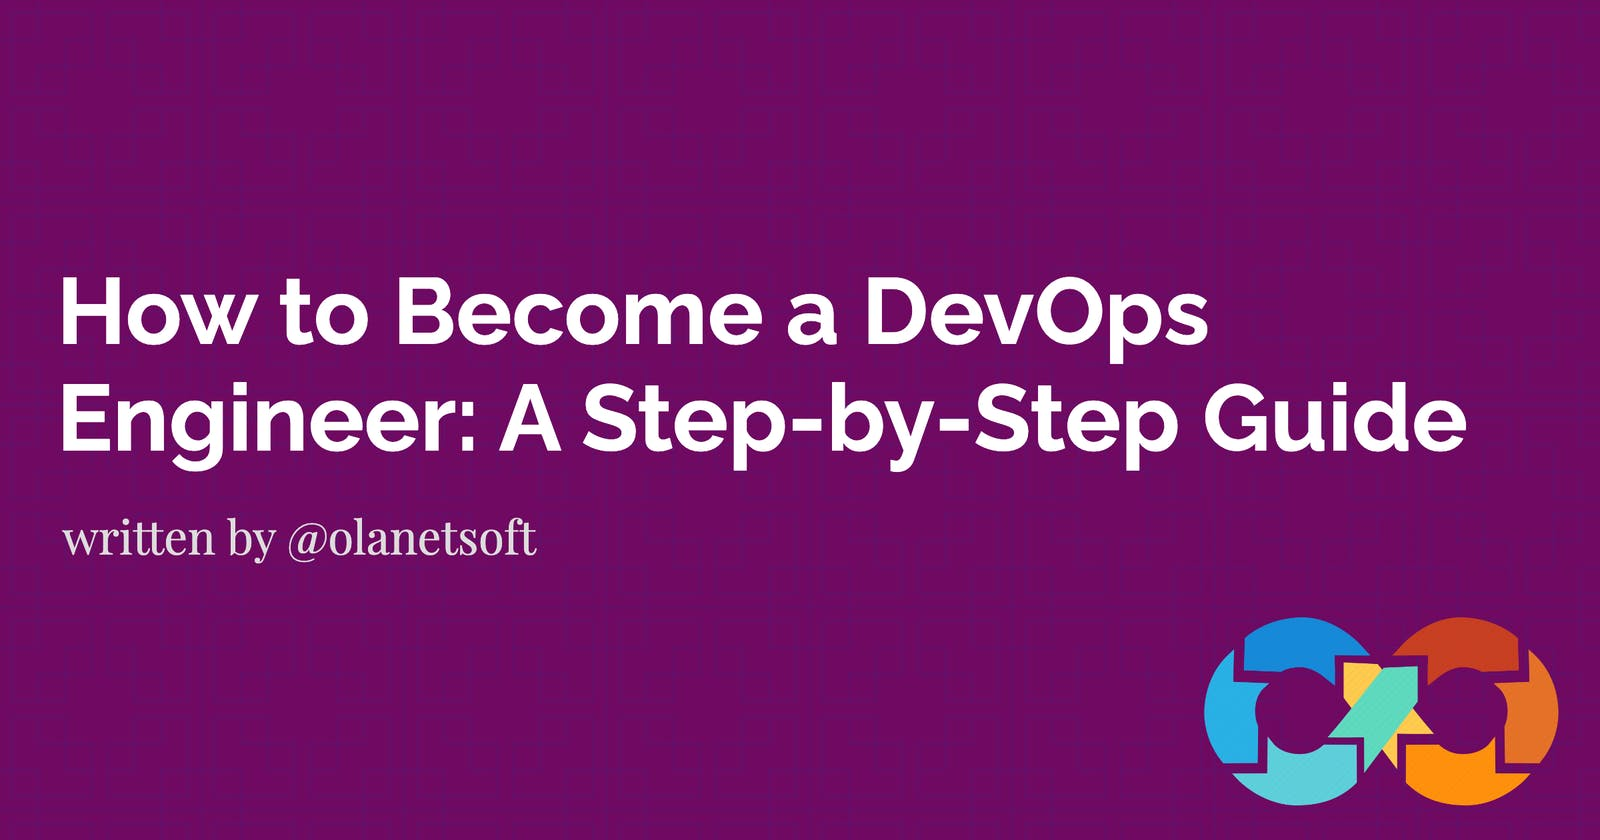 How to Become a DevOps Engineer: A Step-by-Step Guide